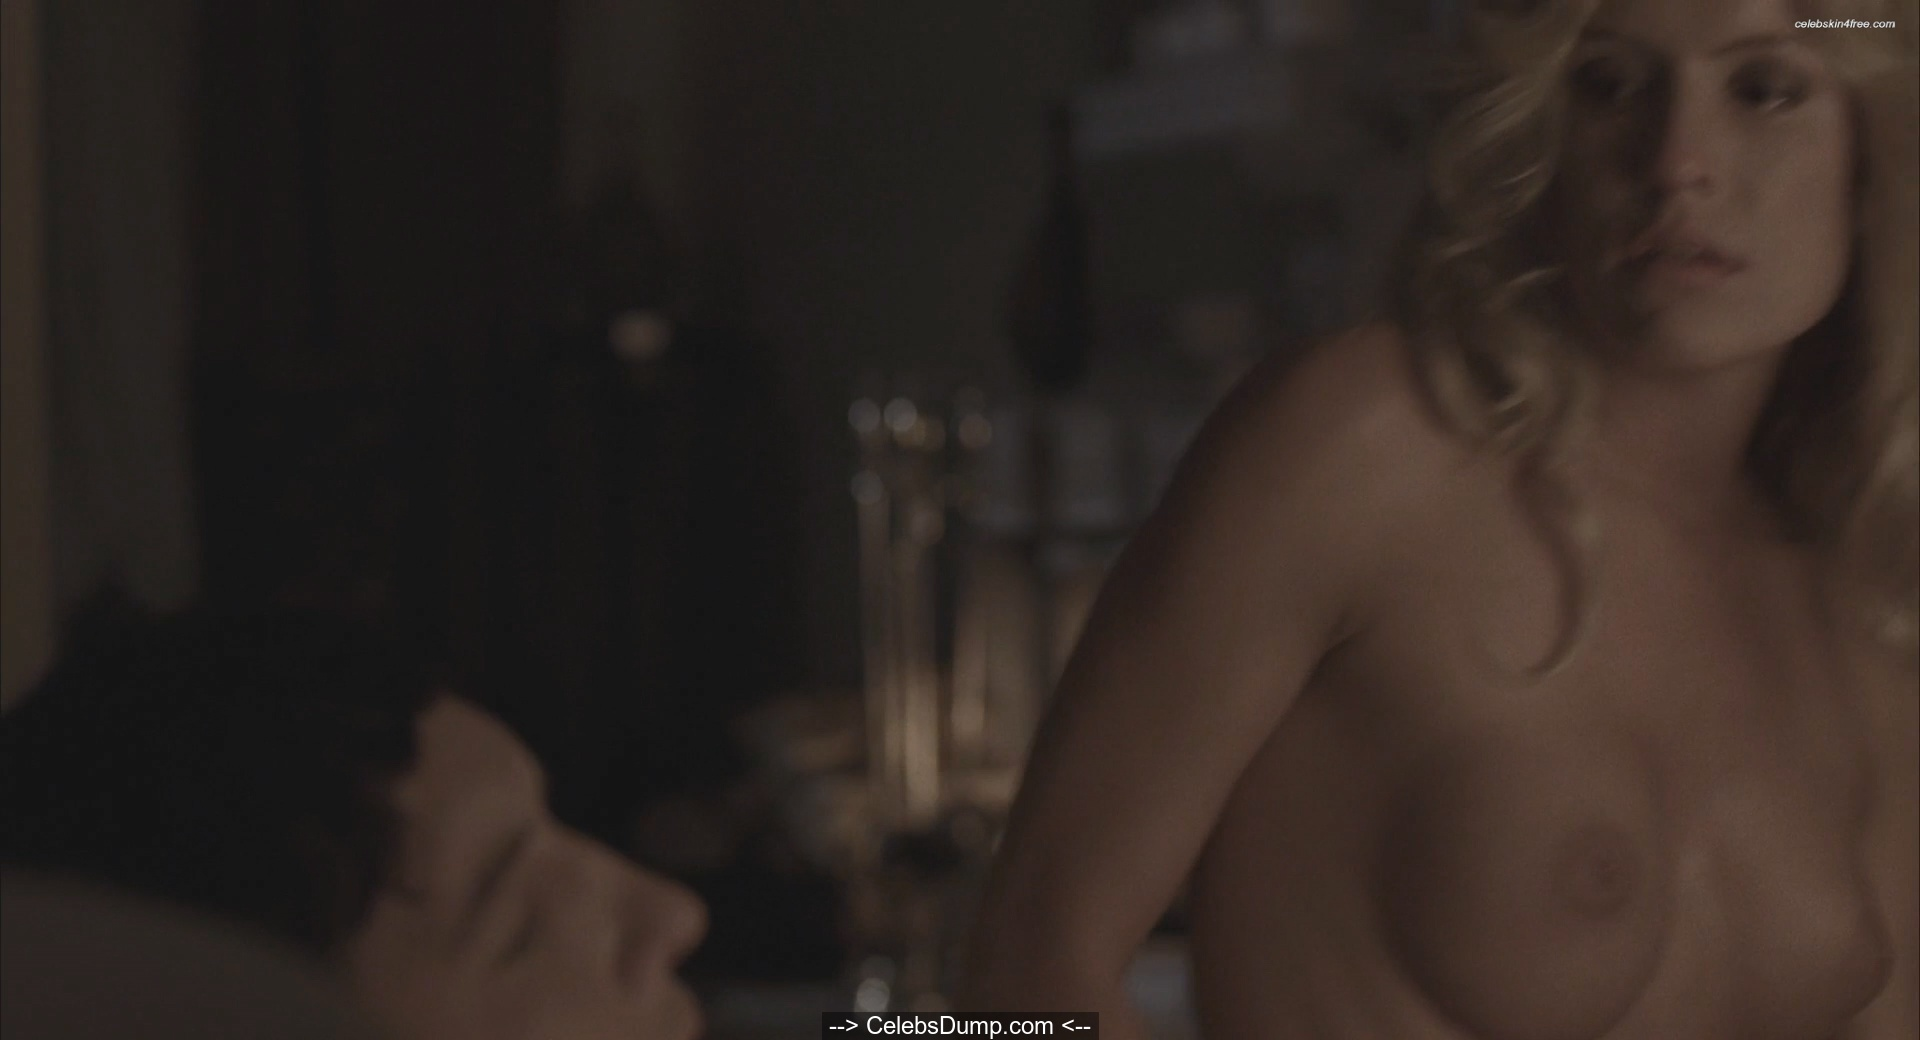 Kinsey packard naked in infestation